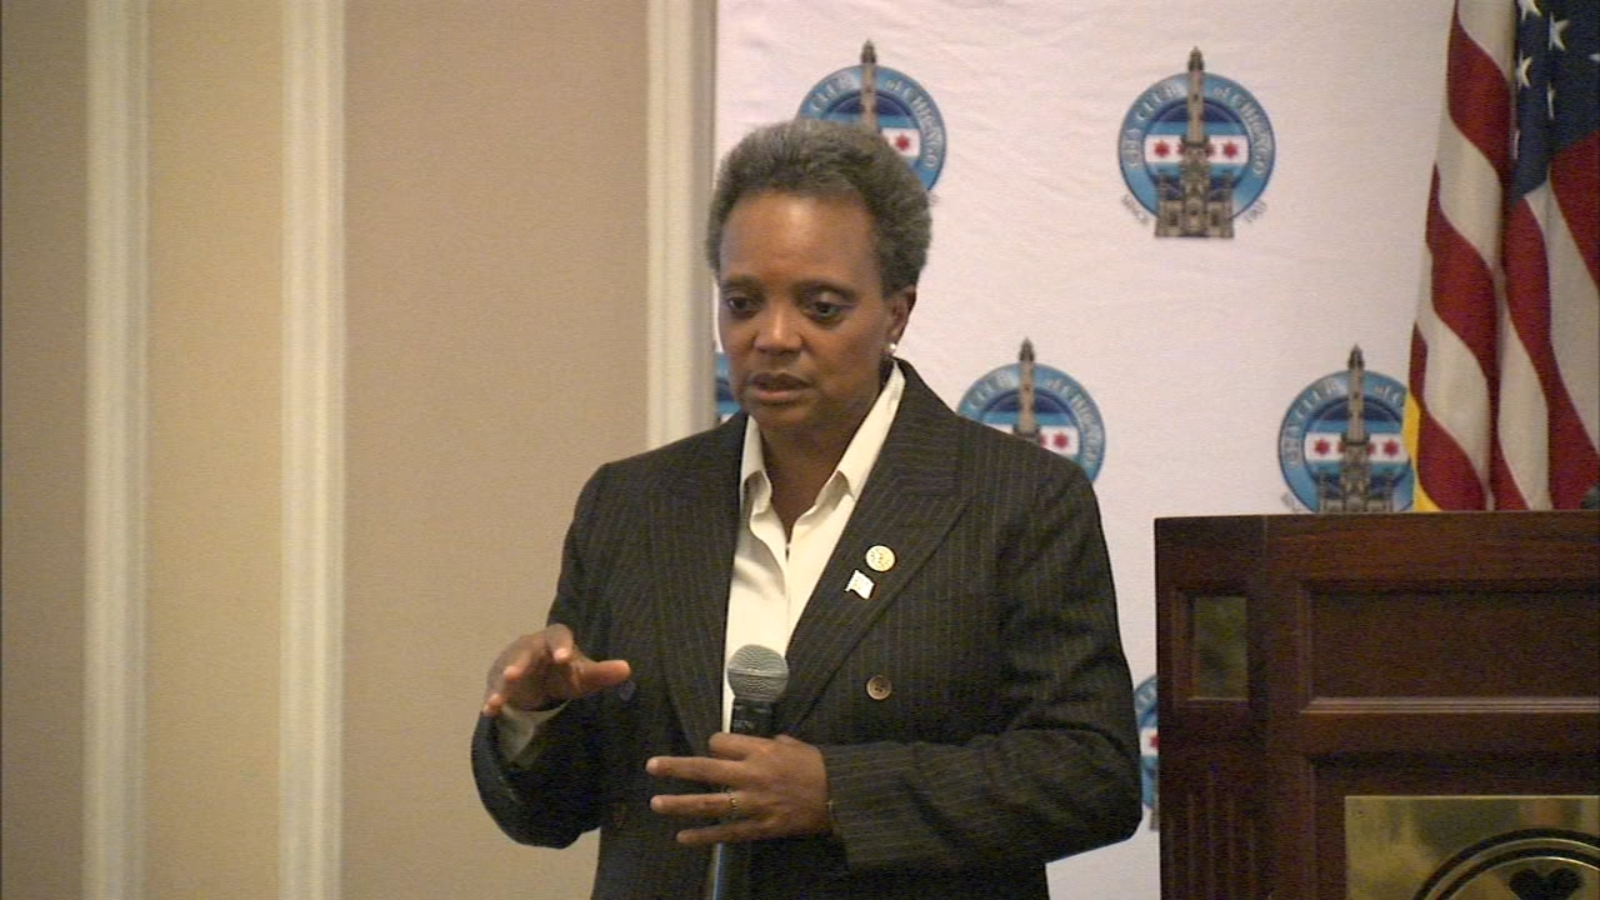 Chicago Mayor Lori Lightfoot looks to housing programs in effort to wipe out poverty